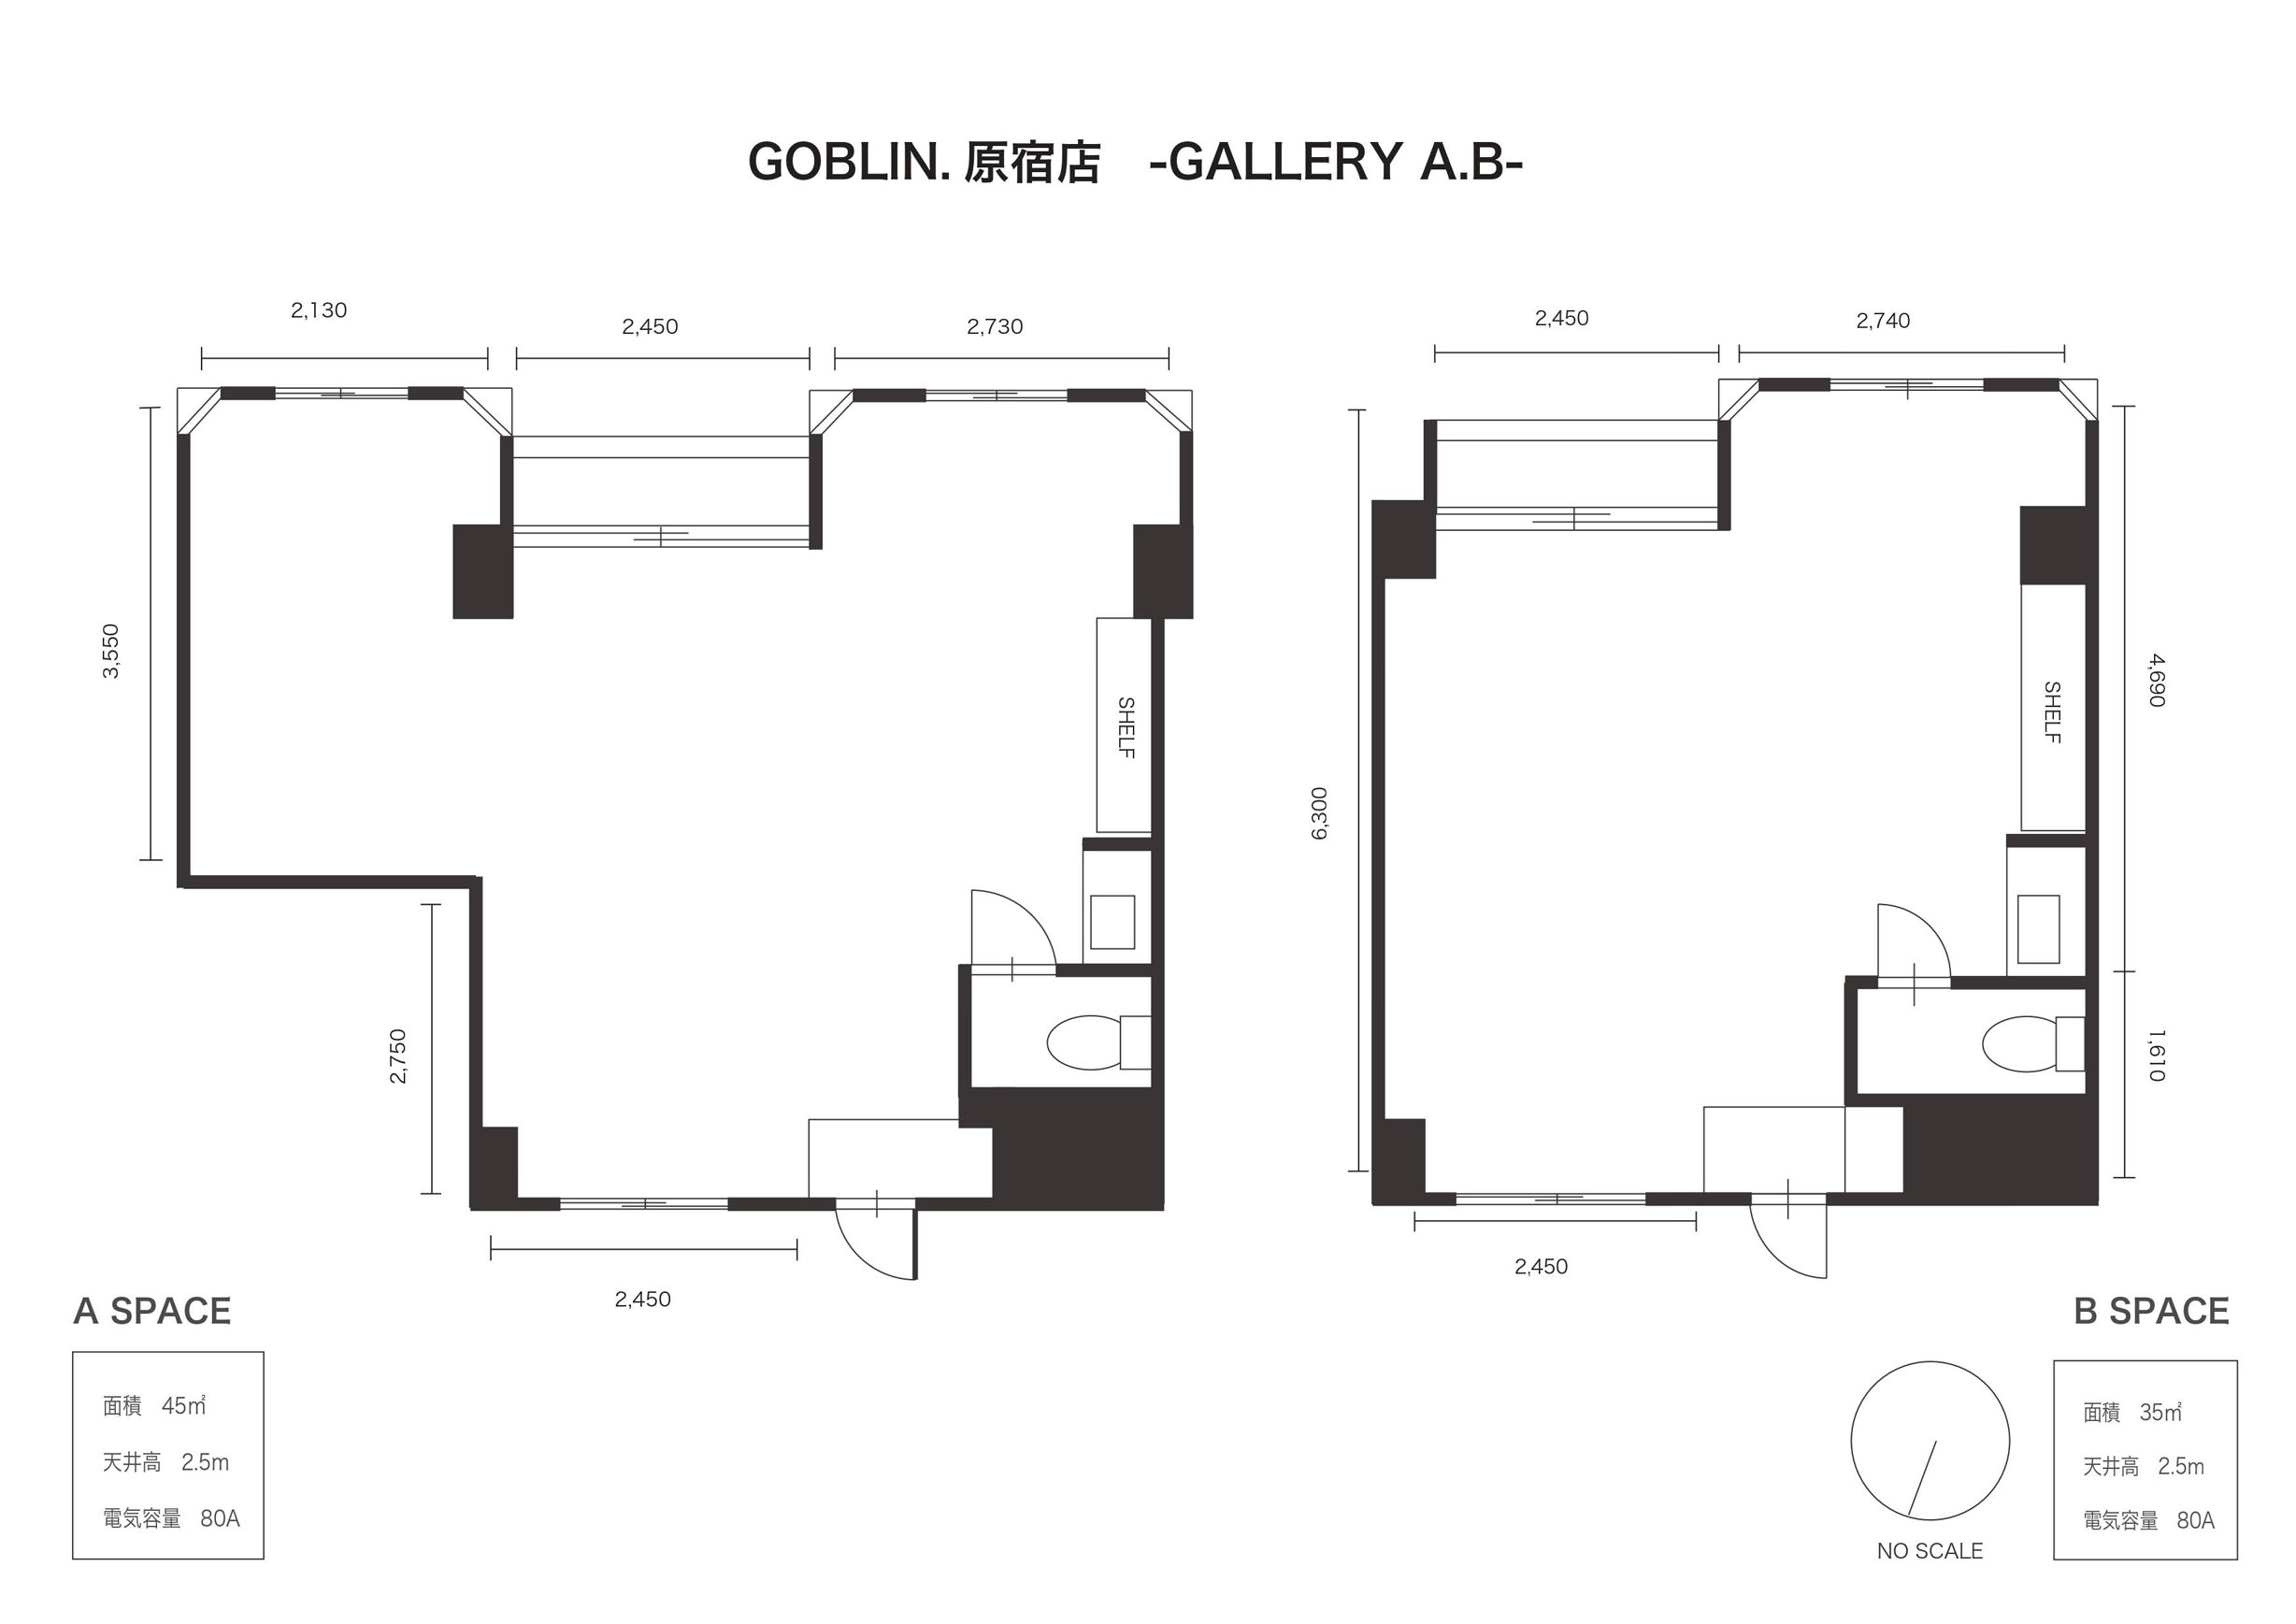 GOBLIN.原宿-GALLERY A- (ID:10061) 図面